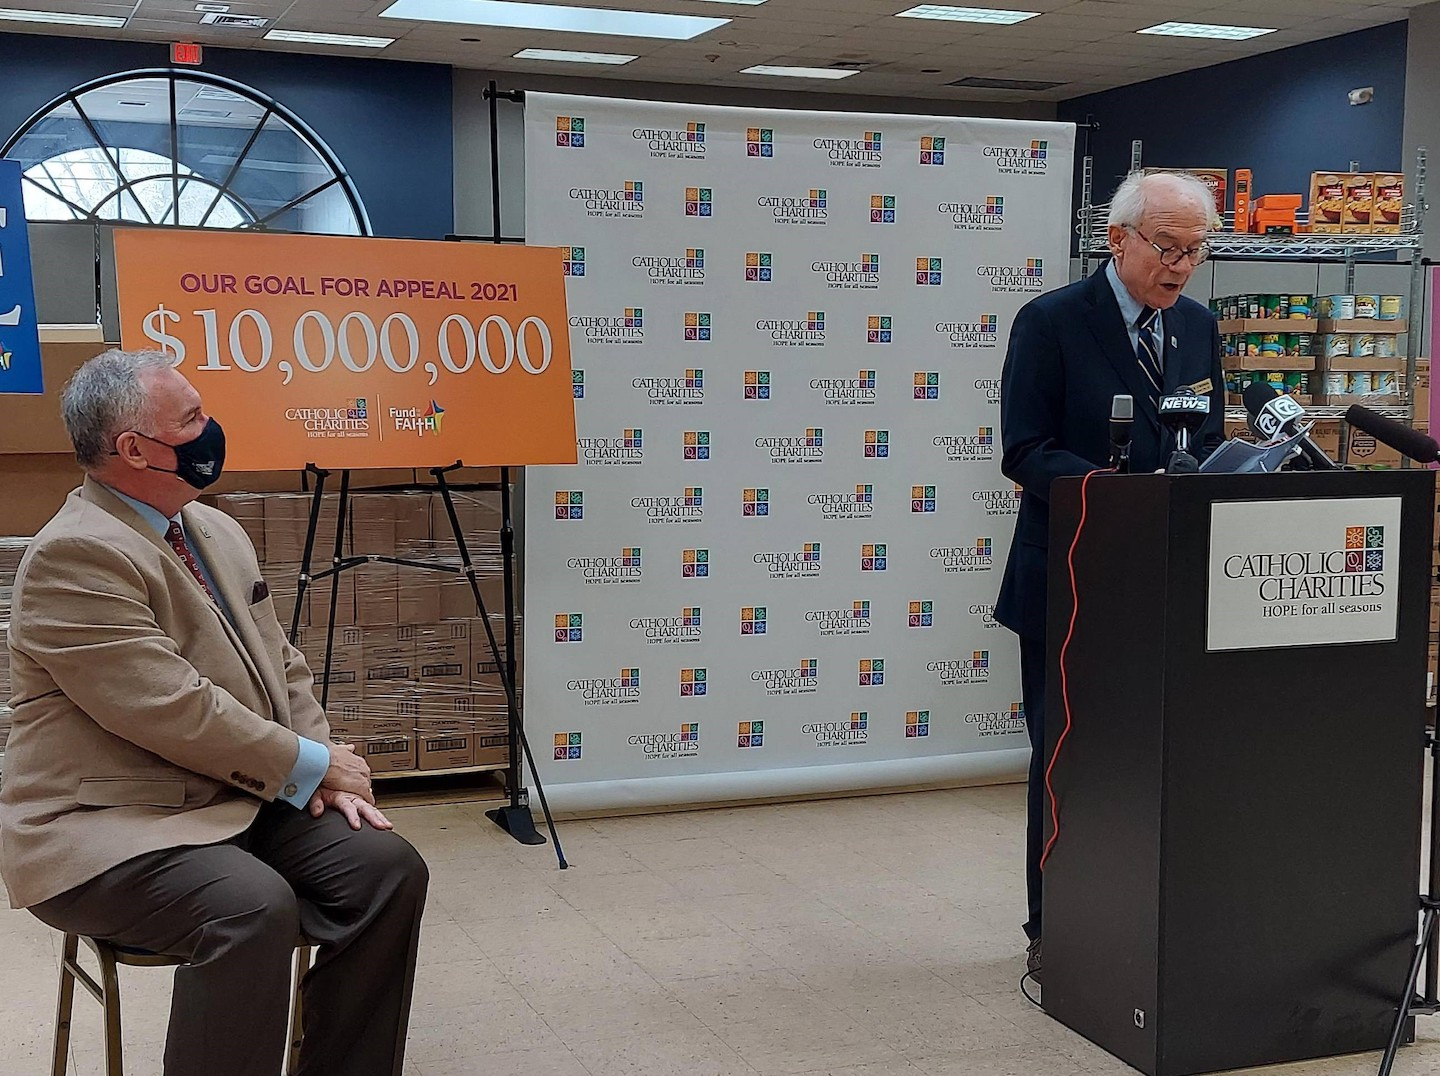 Deacon Steve Schumer, president and CEO of Catholic Charities, with Rick Cronin, Appeal 2021 chair, announcing the $10 million goal